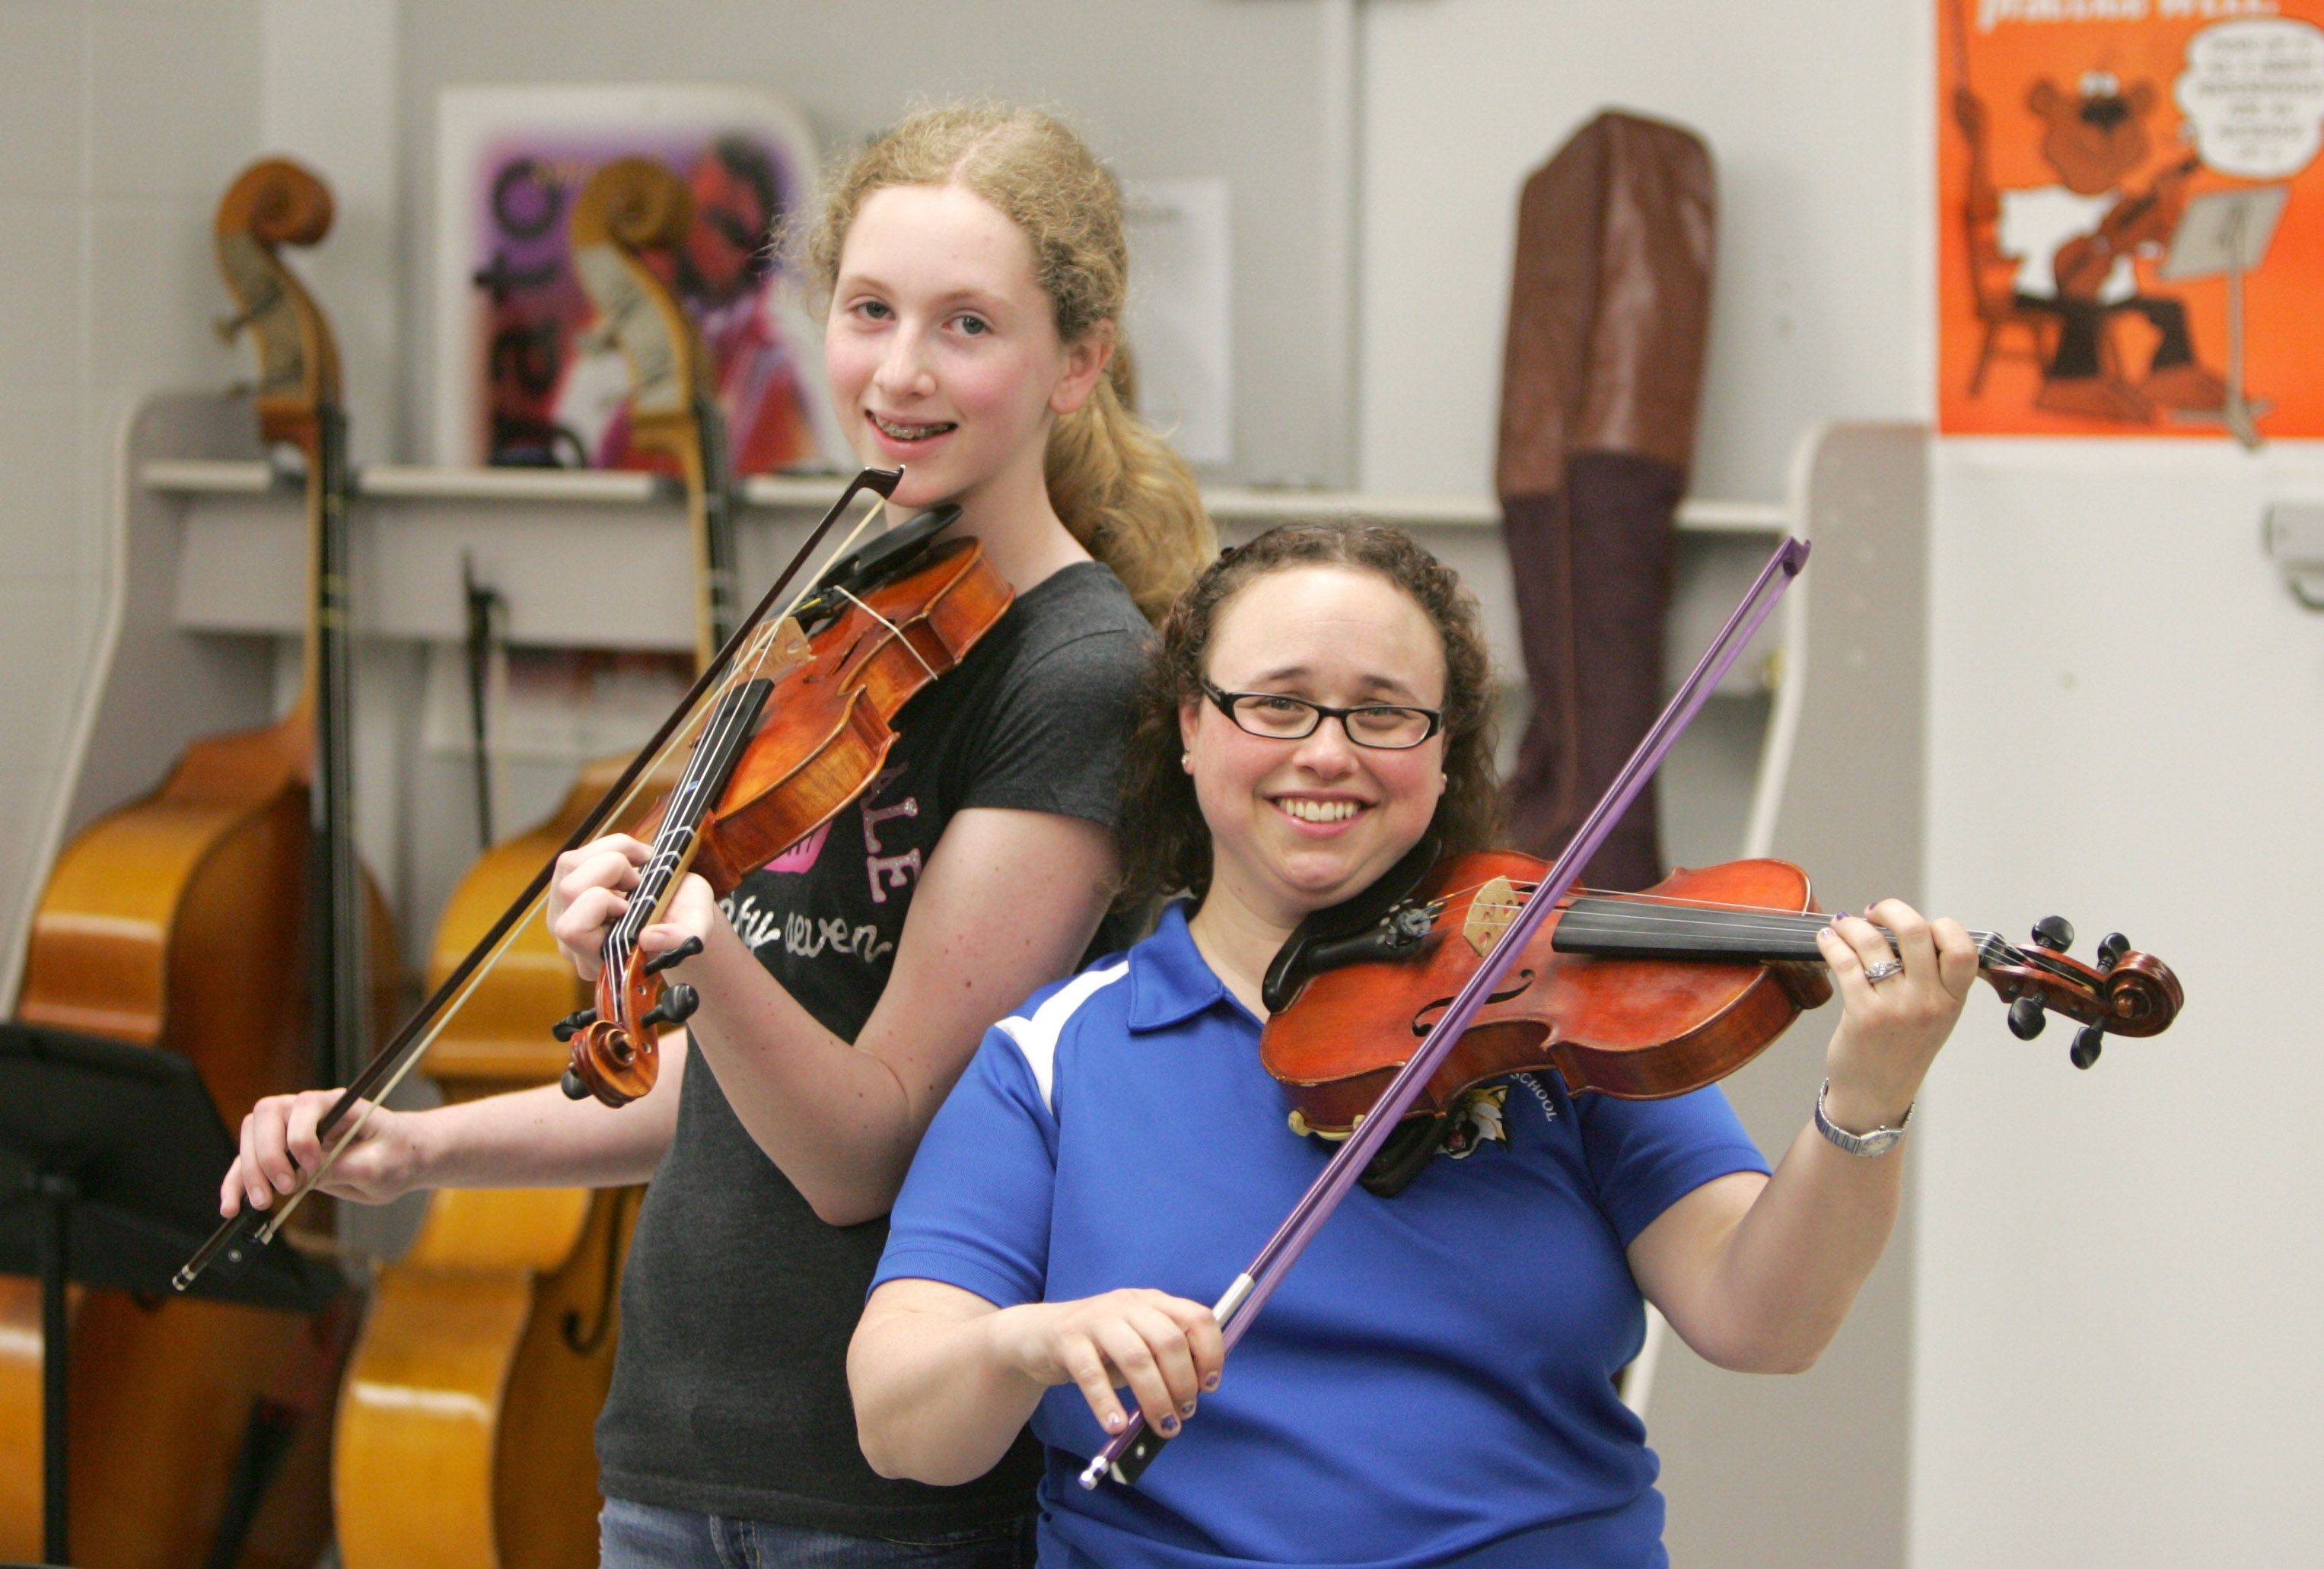 Student Melinda Boehm, left, wrote that orchestra teacher Rachel Kayser made a difference in her life.